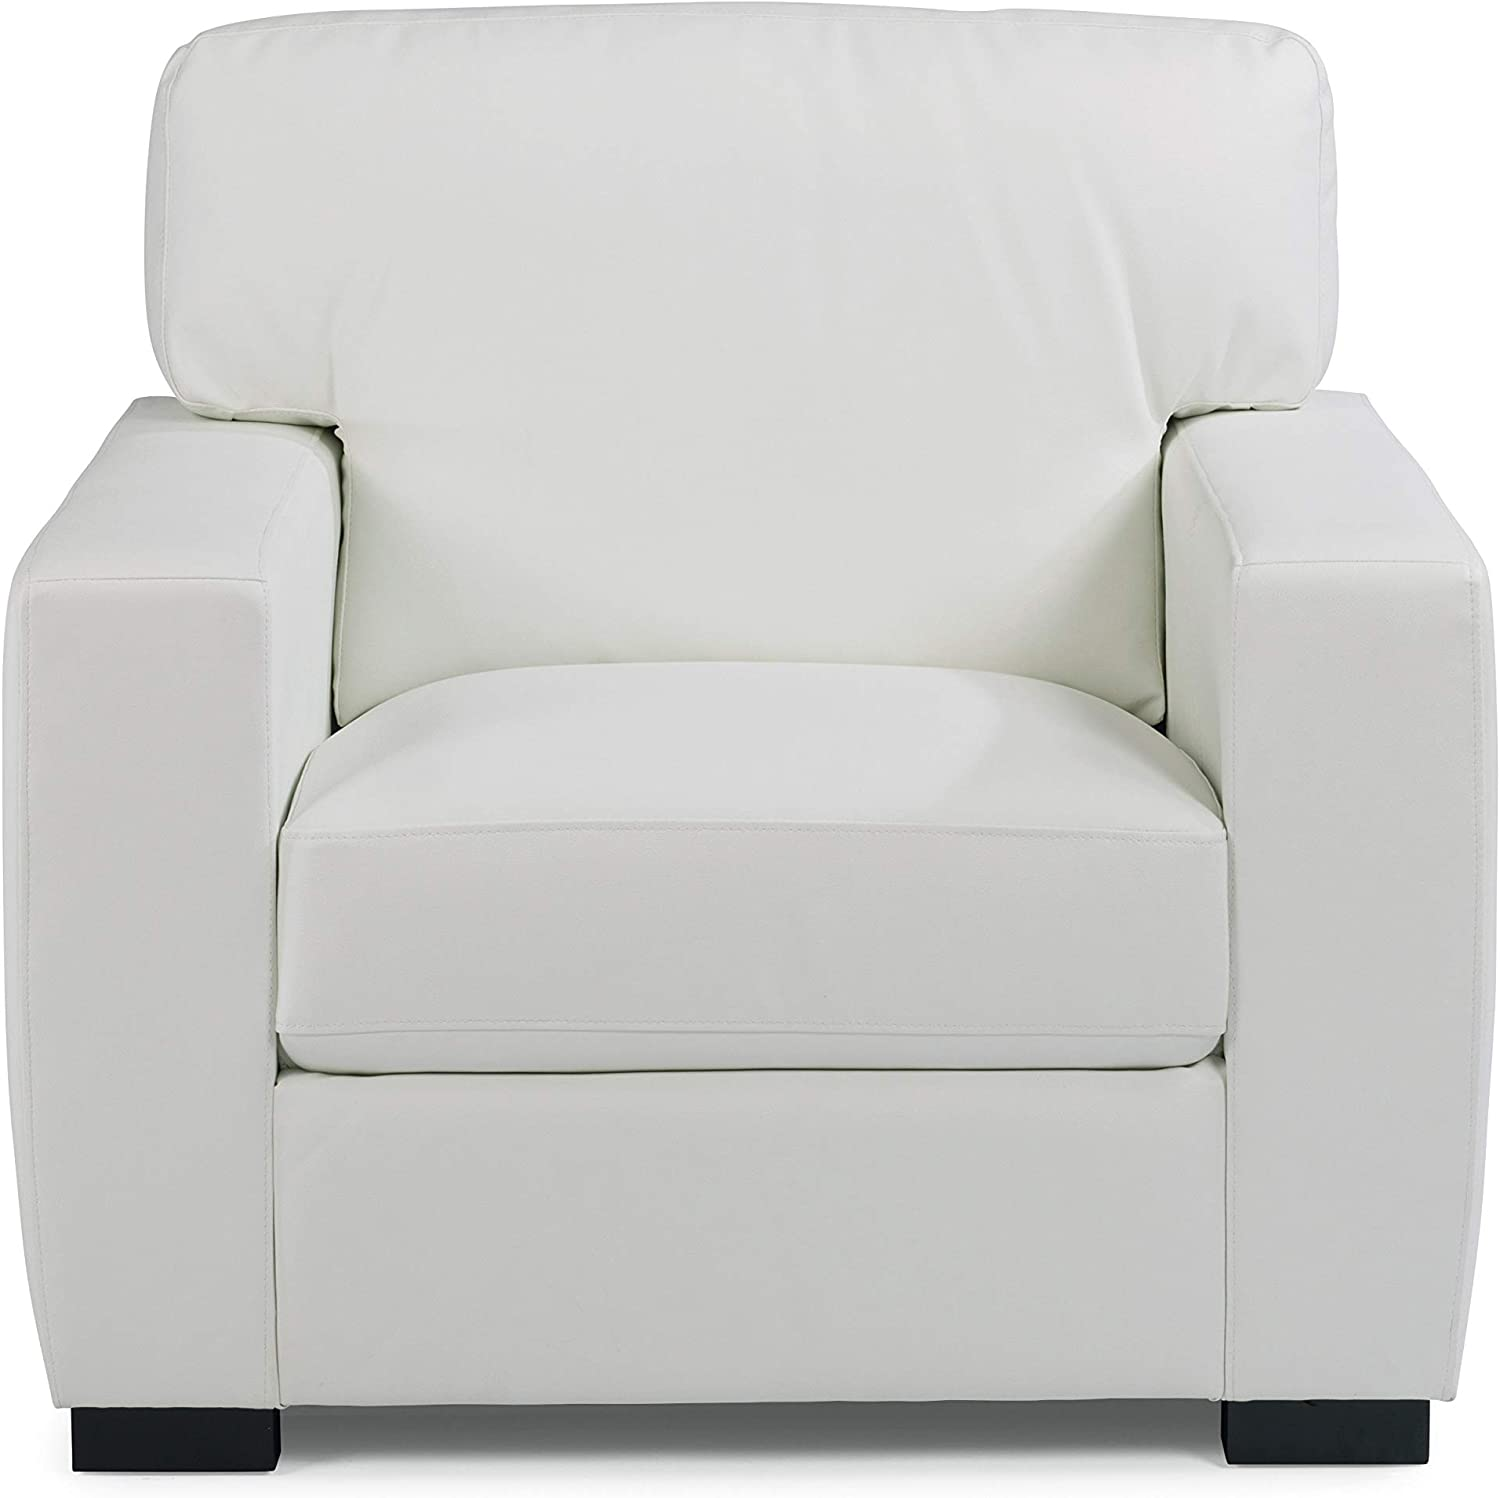 Erin Ivory Upholstered Contemporary Chair by Home Styles